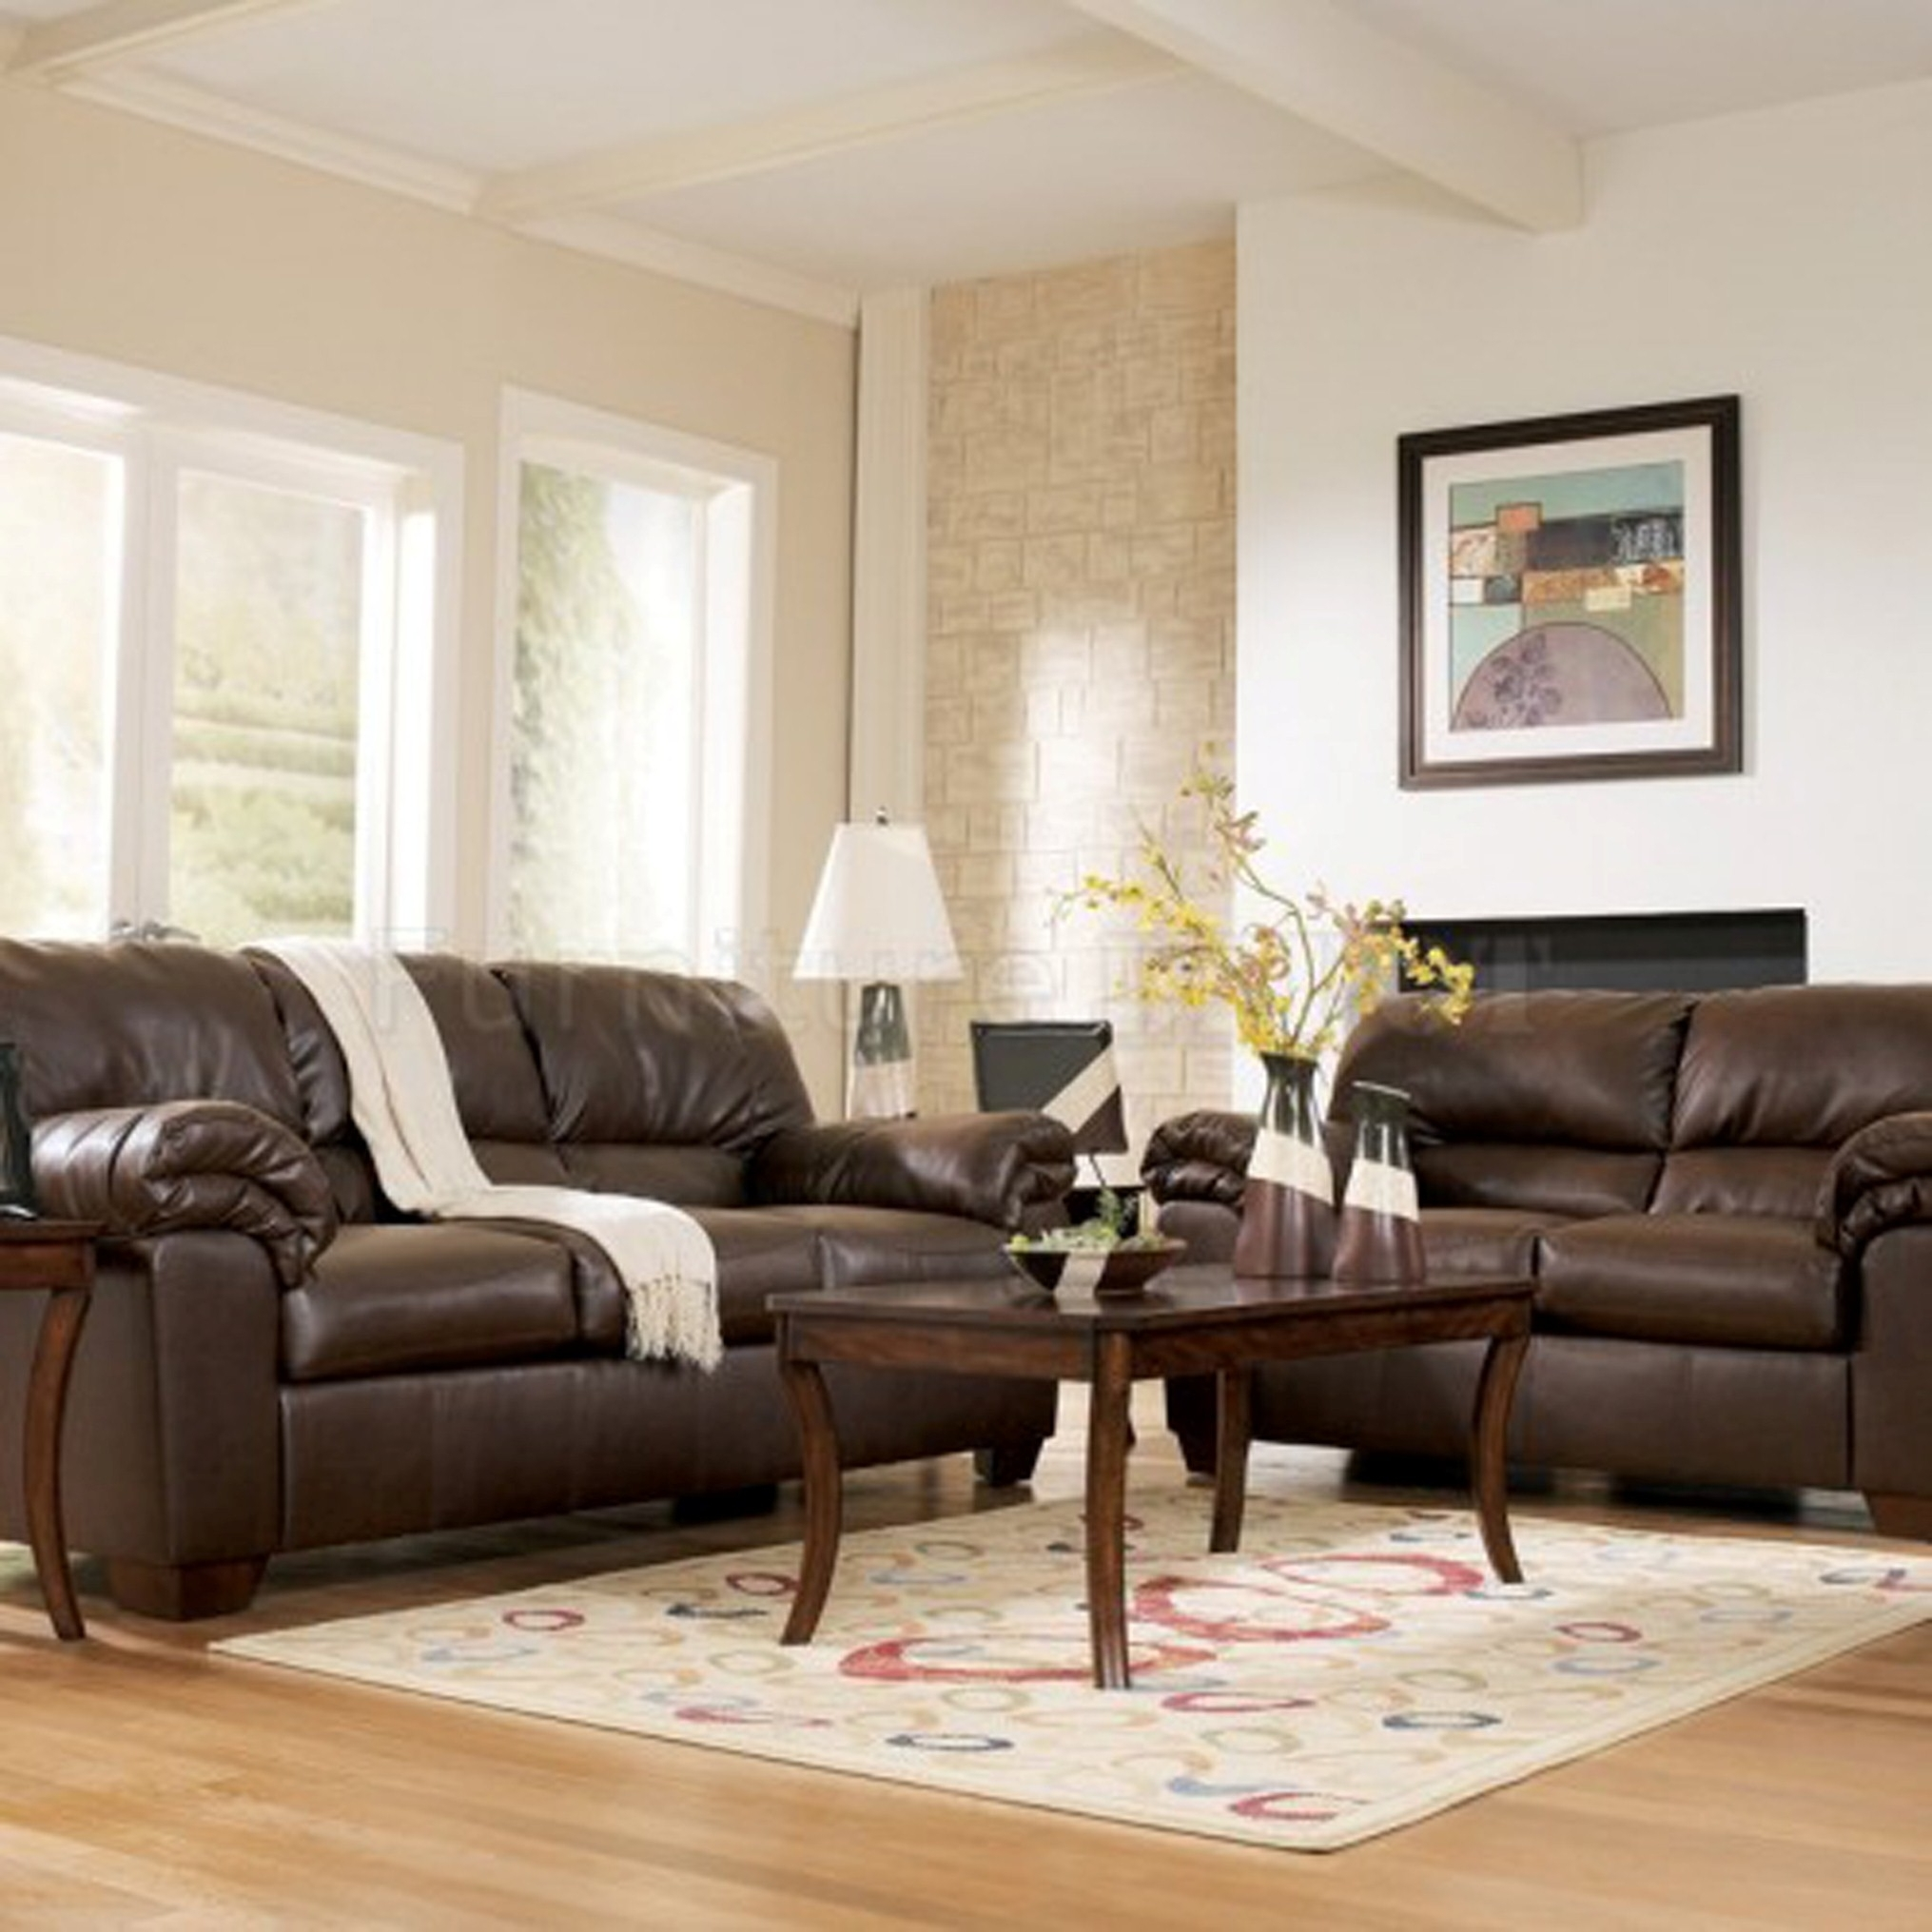 Living room ideas brown leather sofa for Pictures of living rooms with brown furniture